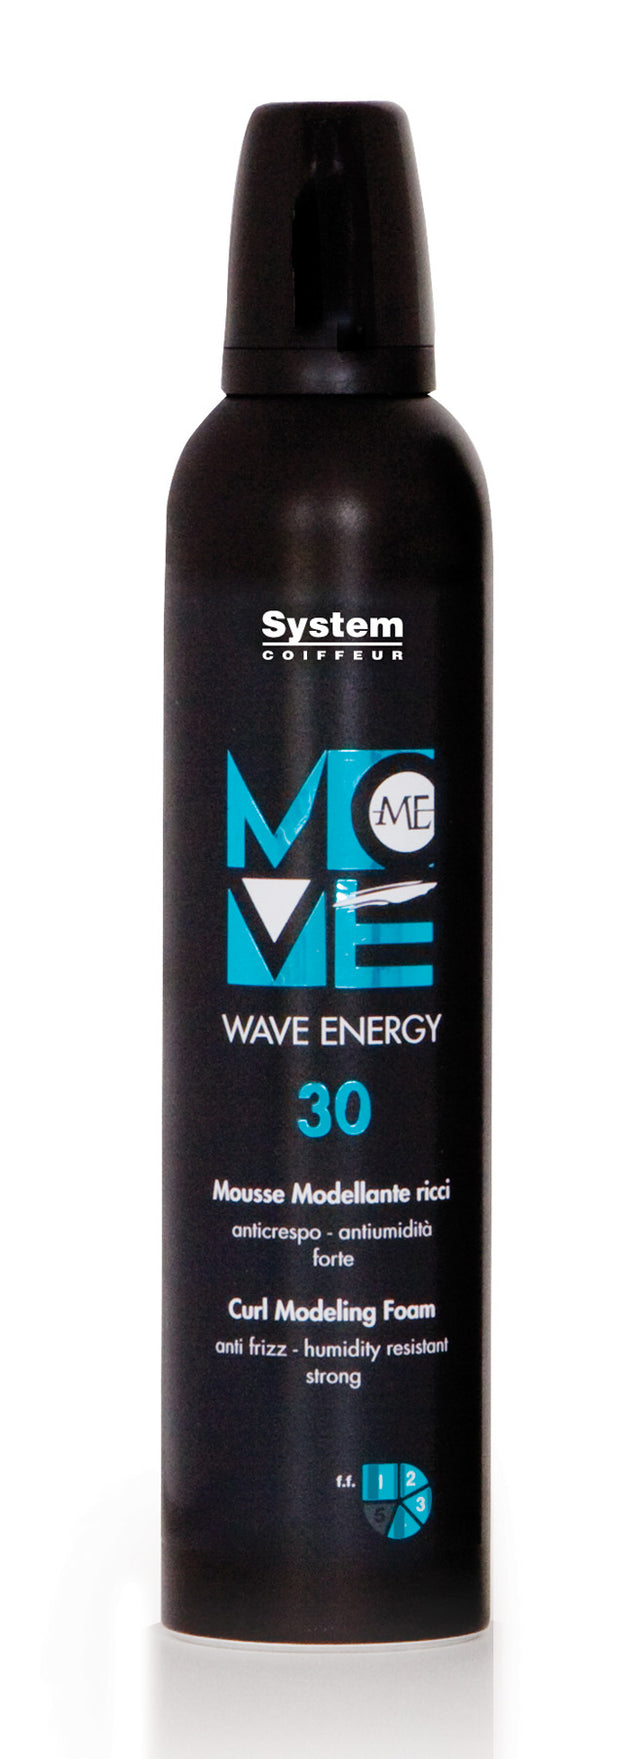 30 Wave Energy 300ml